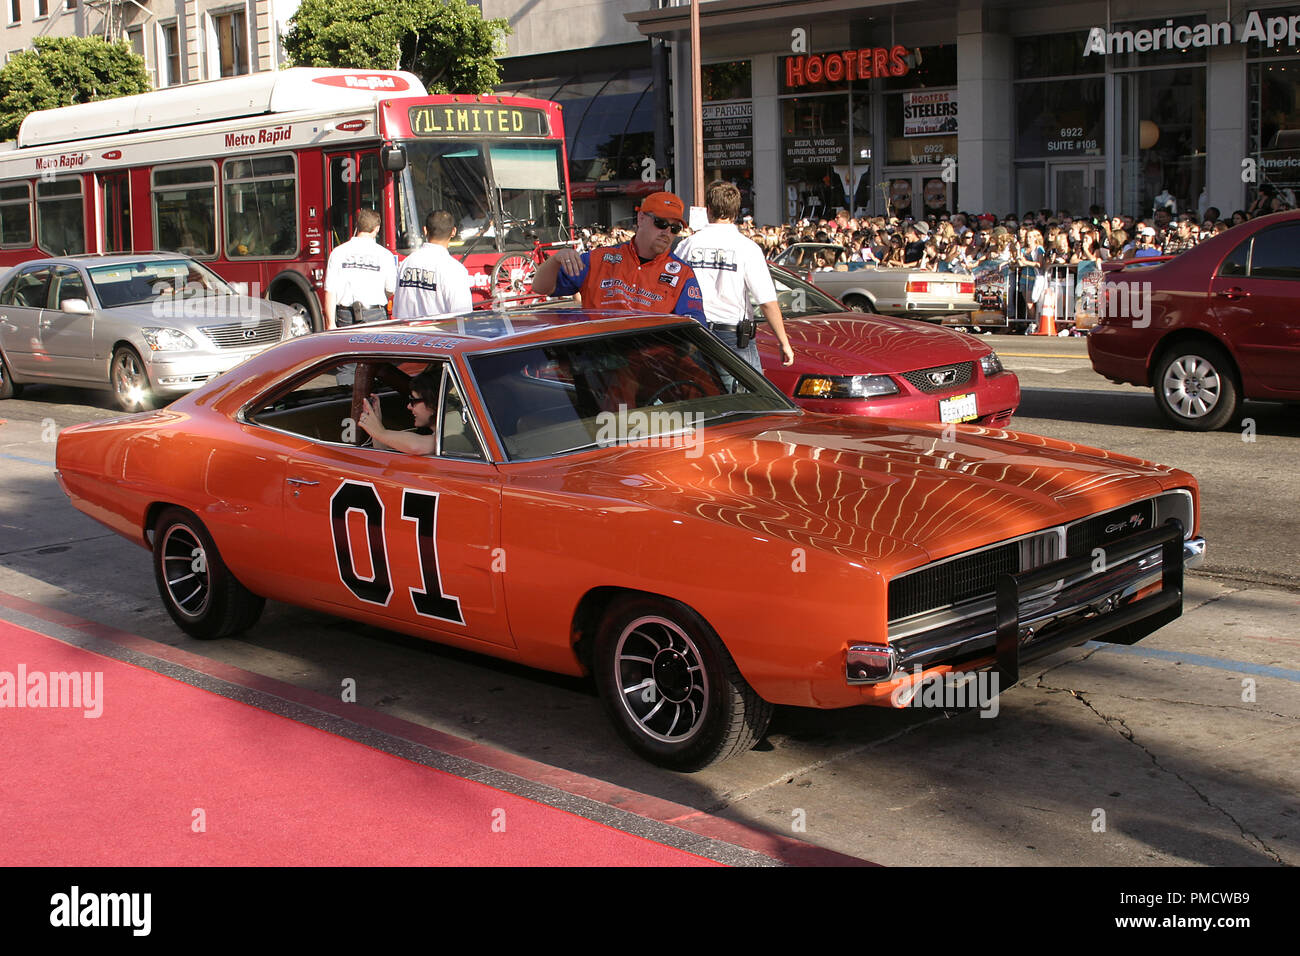 General Lee Car Stock Photos & General Lee Car Stock Images - Alamy